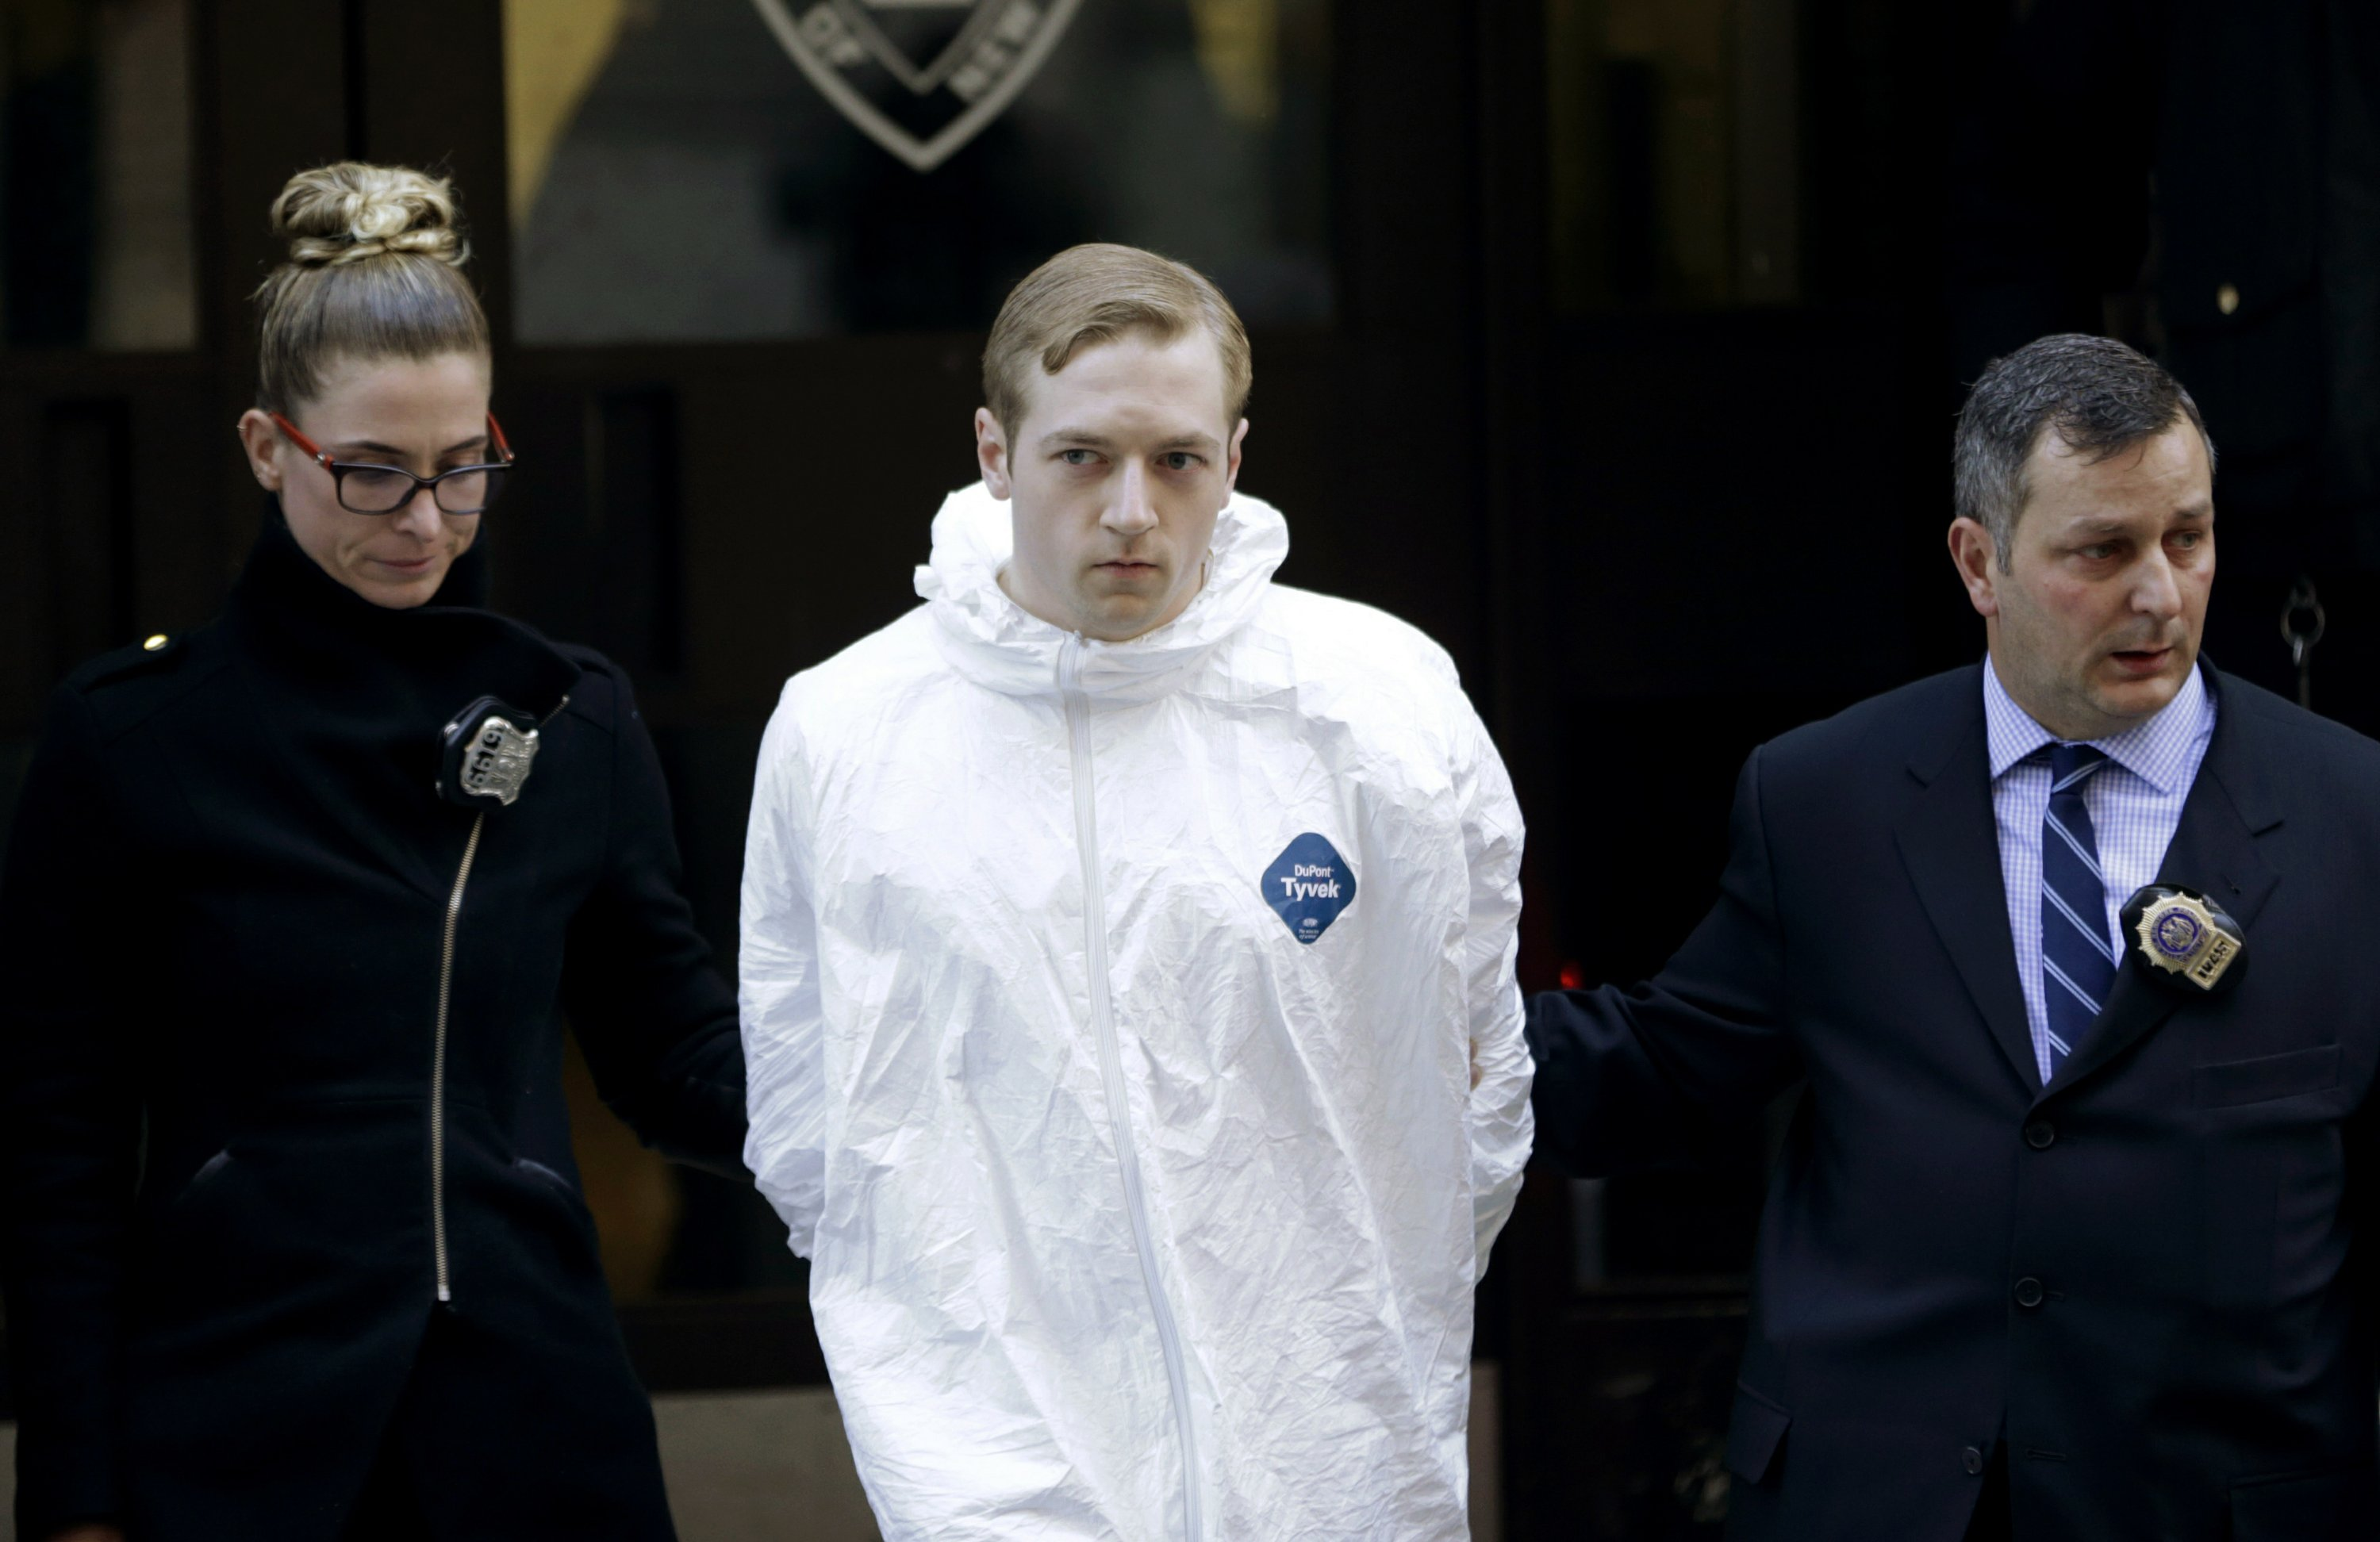 Police White Sword Killer Went To Ny To Attack Black People